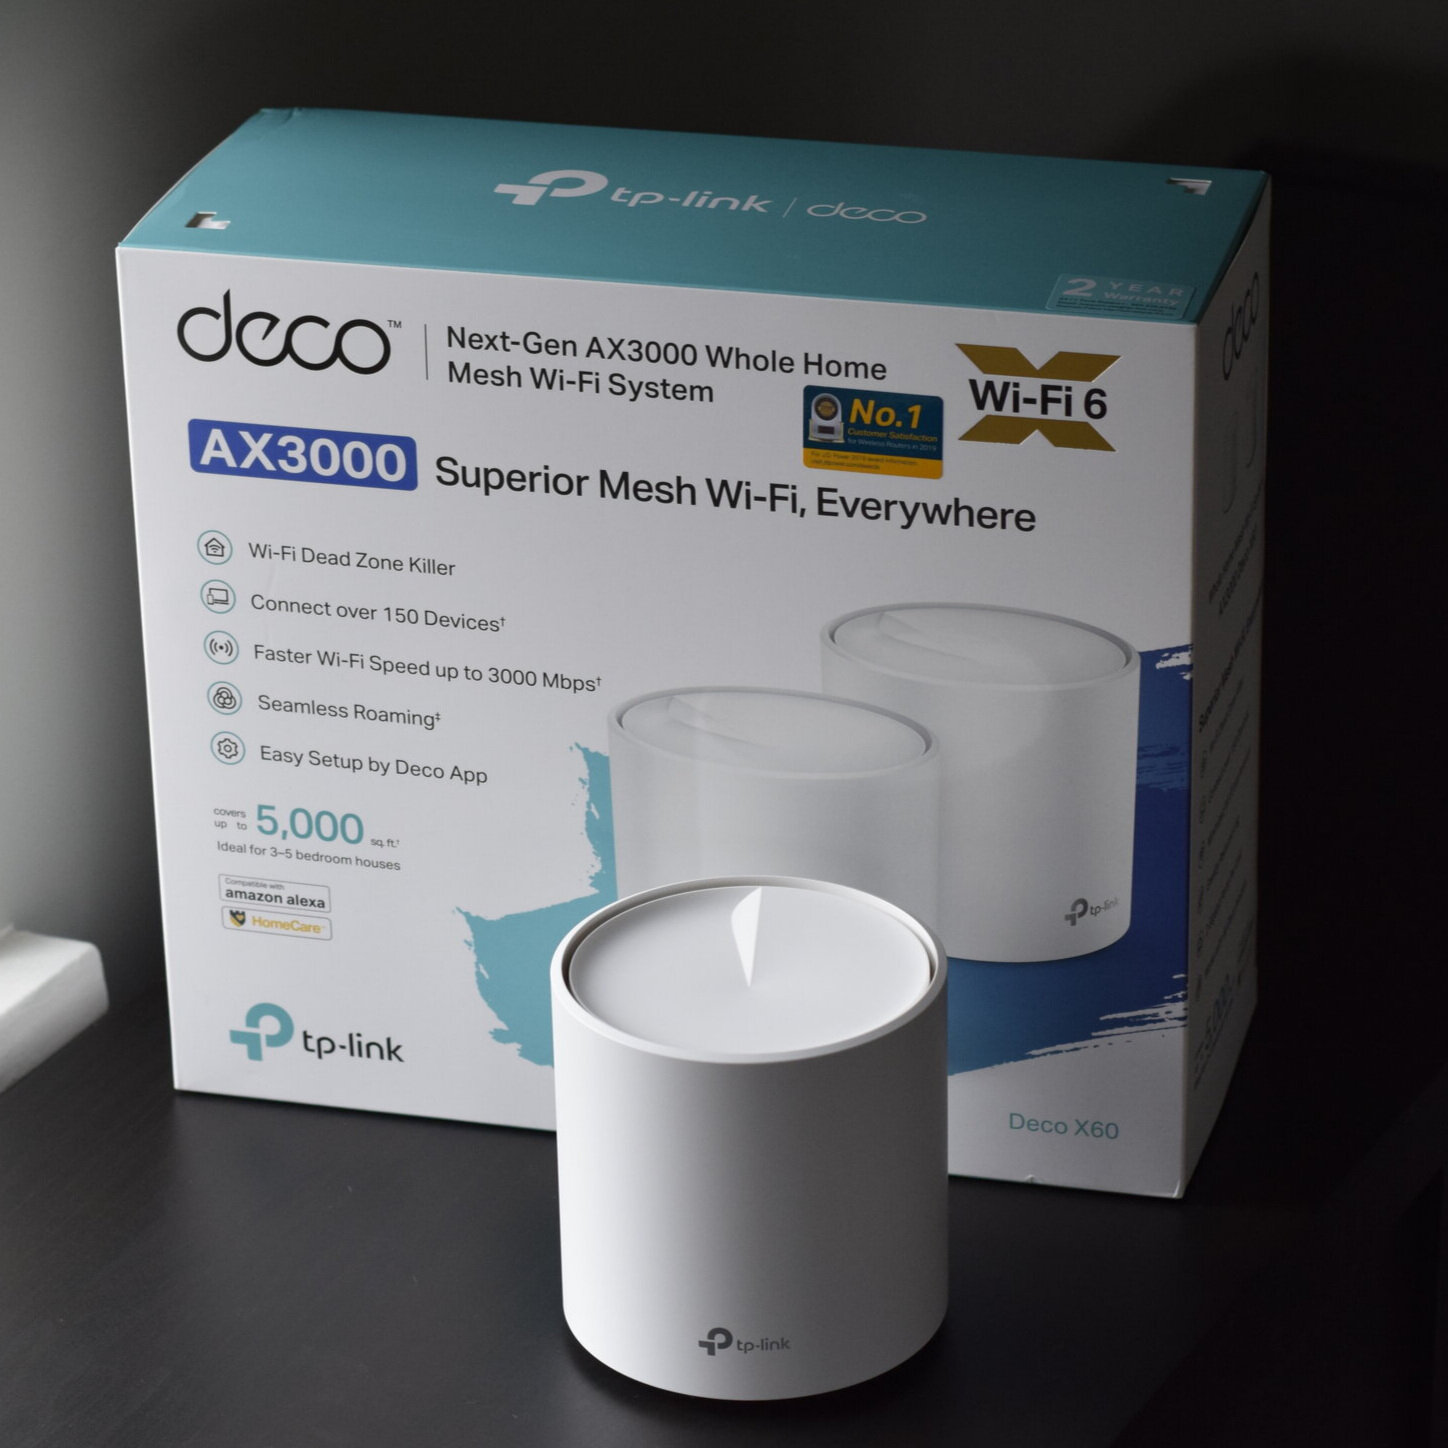 Deco X60 Review and Wi-Fi 6 Mesh Performance